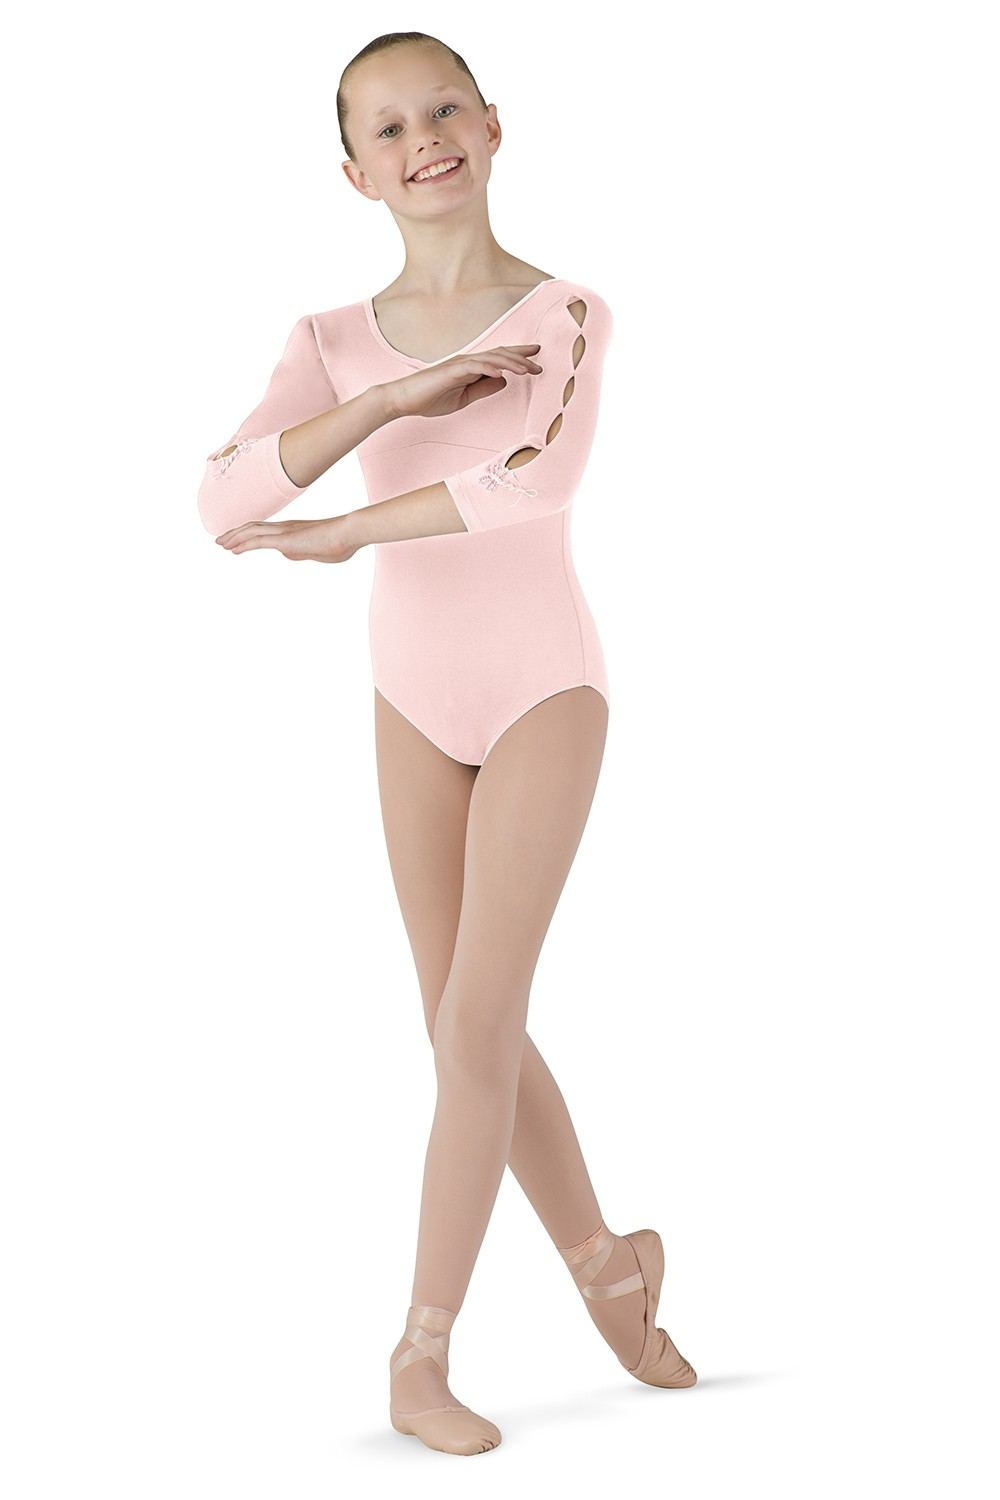 Dragonfly 3/4 Slv Children's Dance Leotards